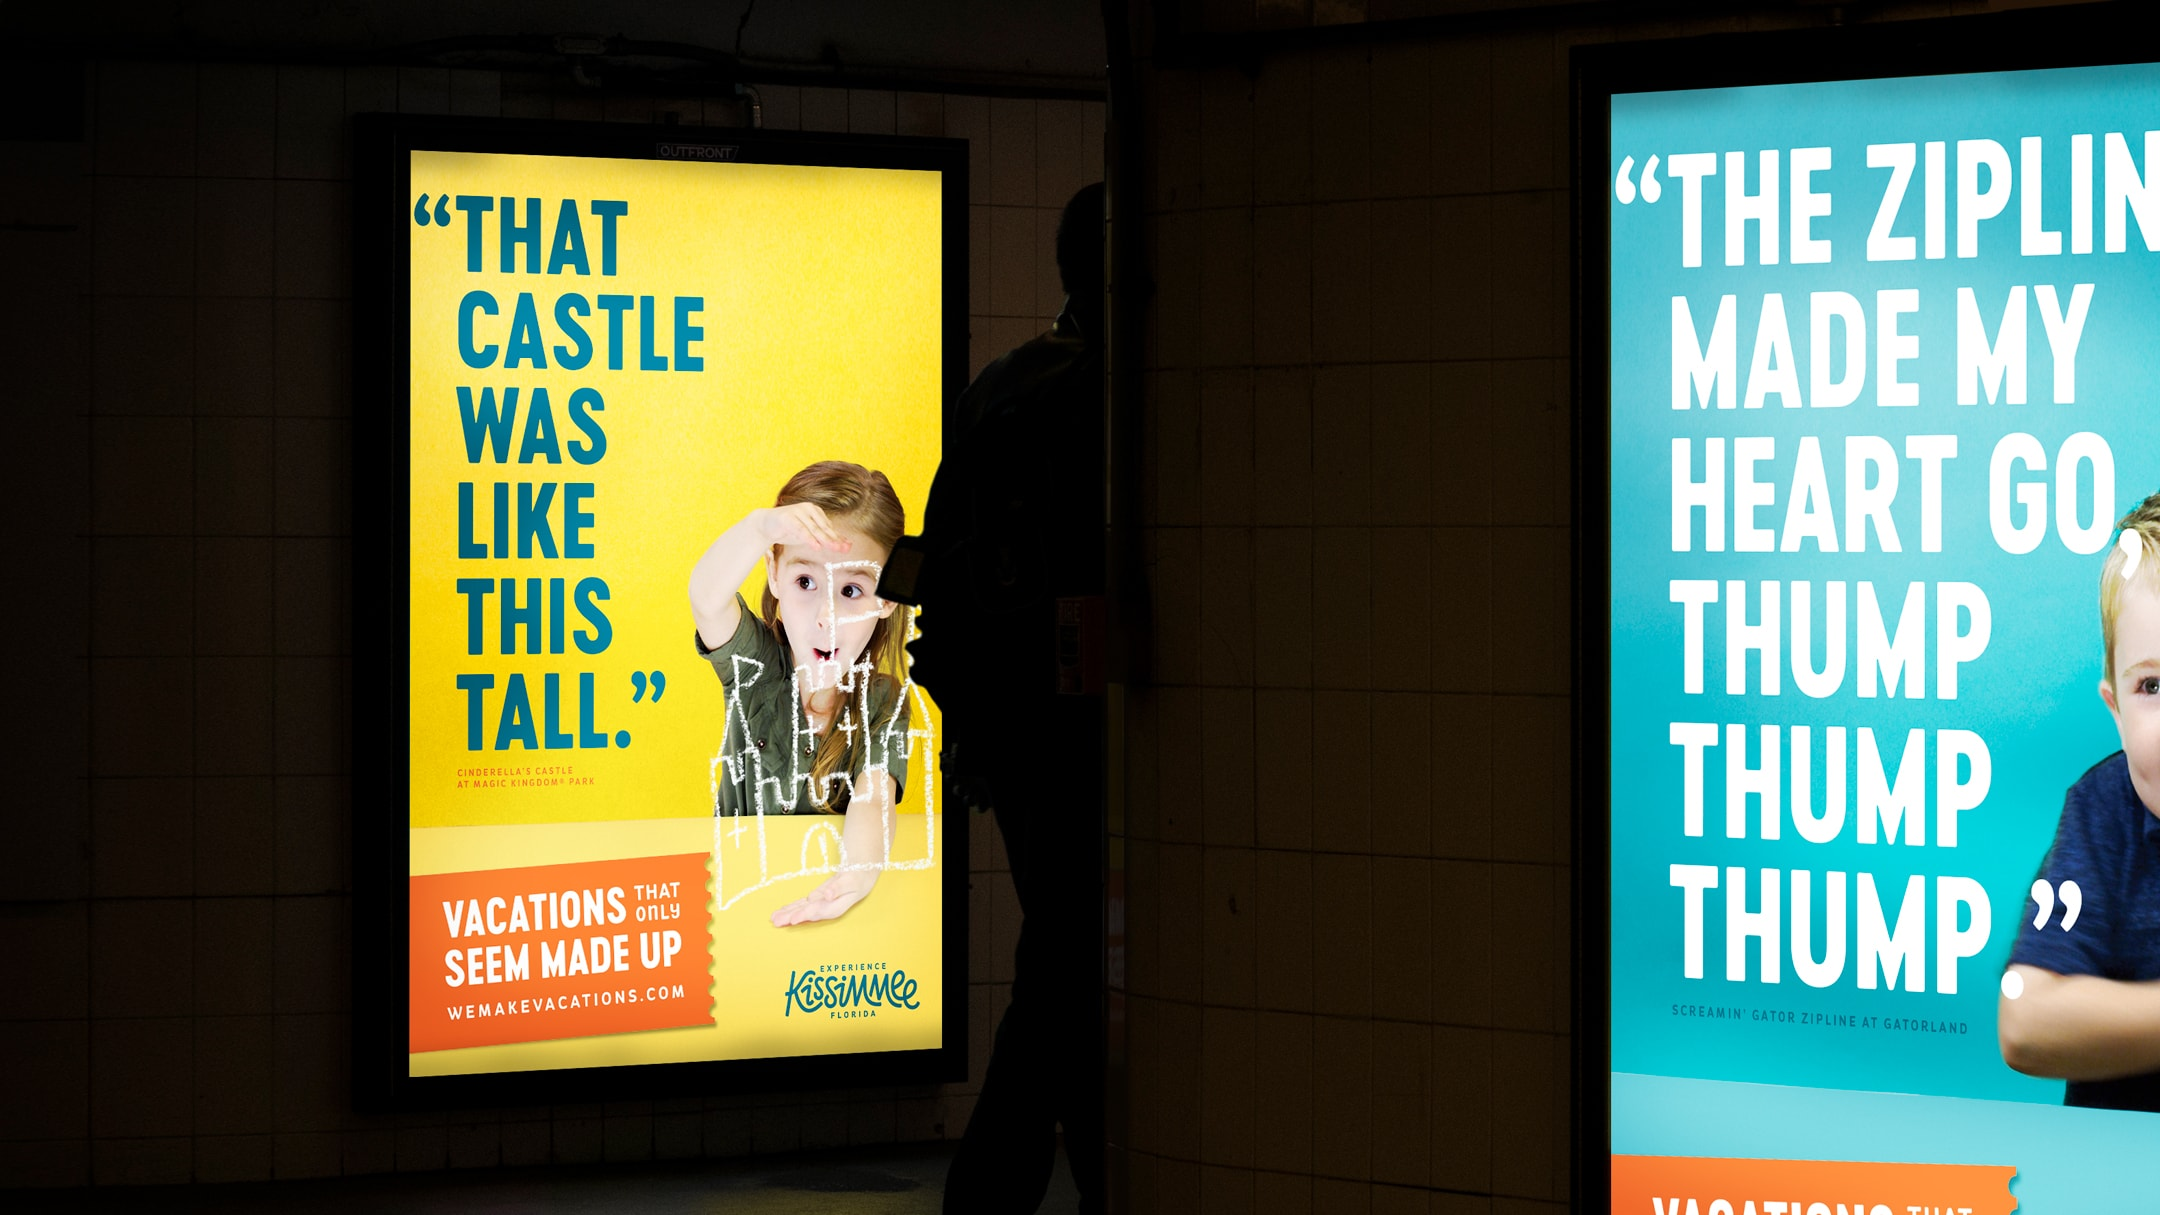 Two experience Kissimmee ads in a bus shelter.